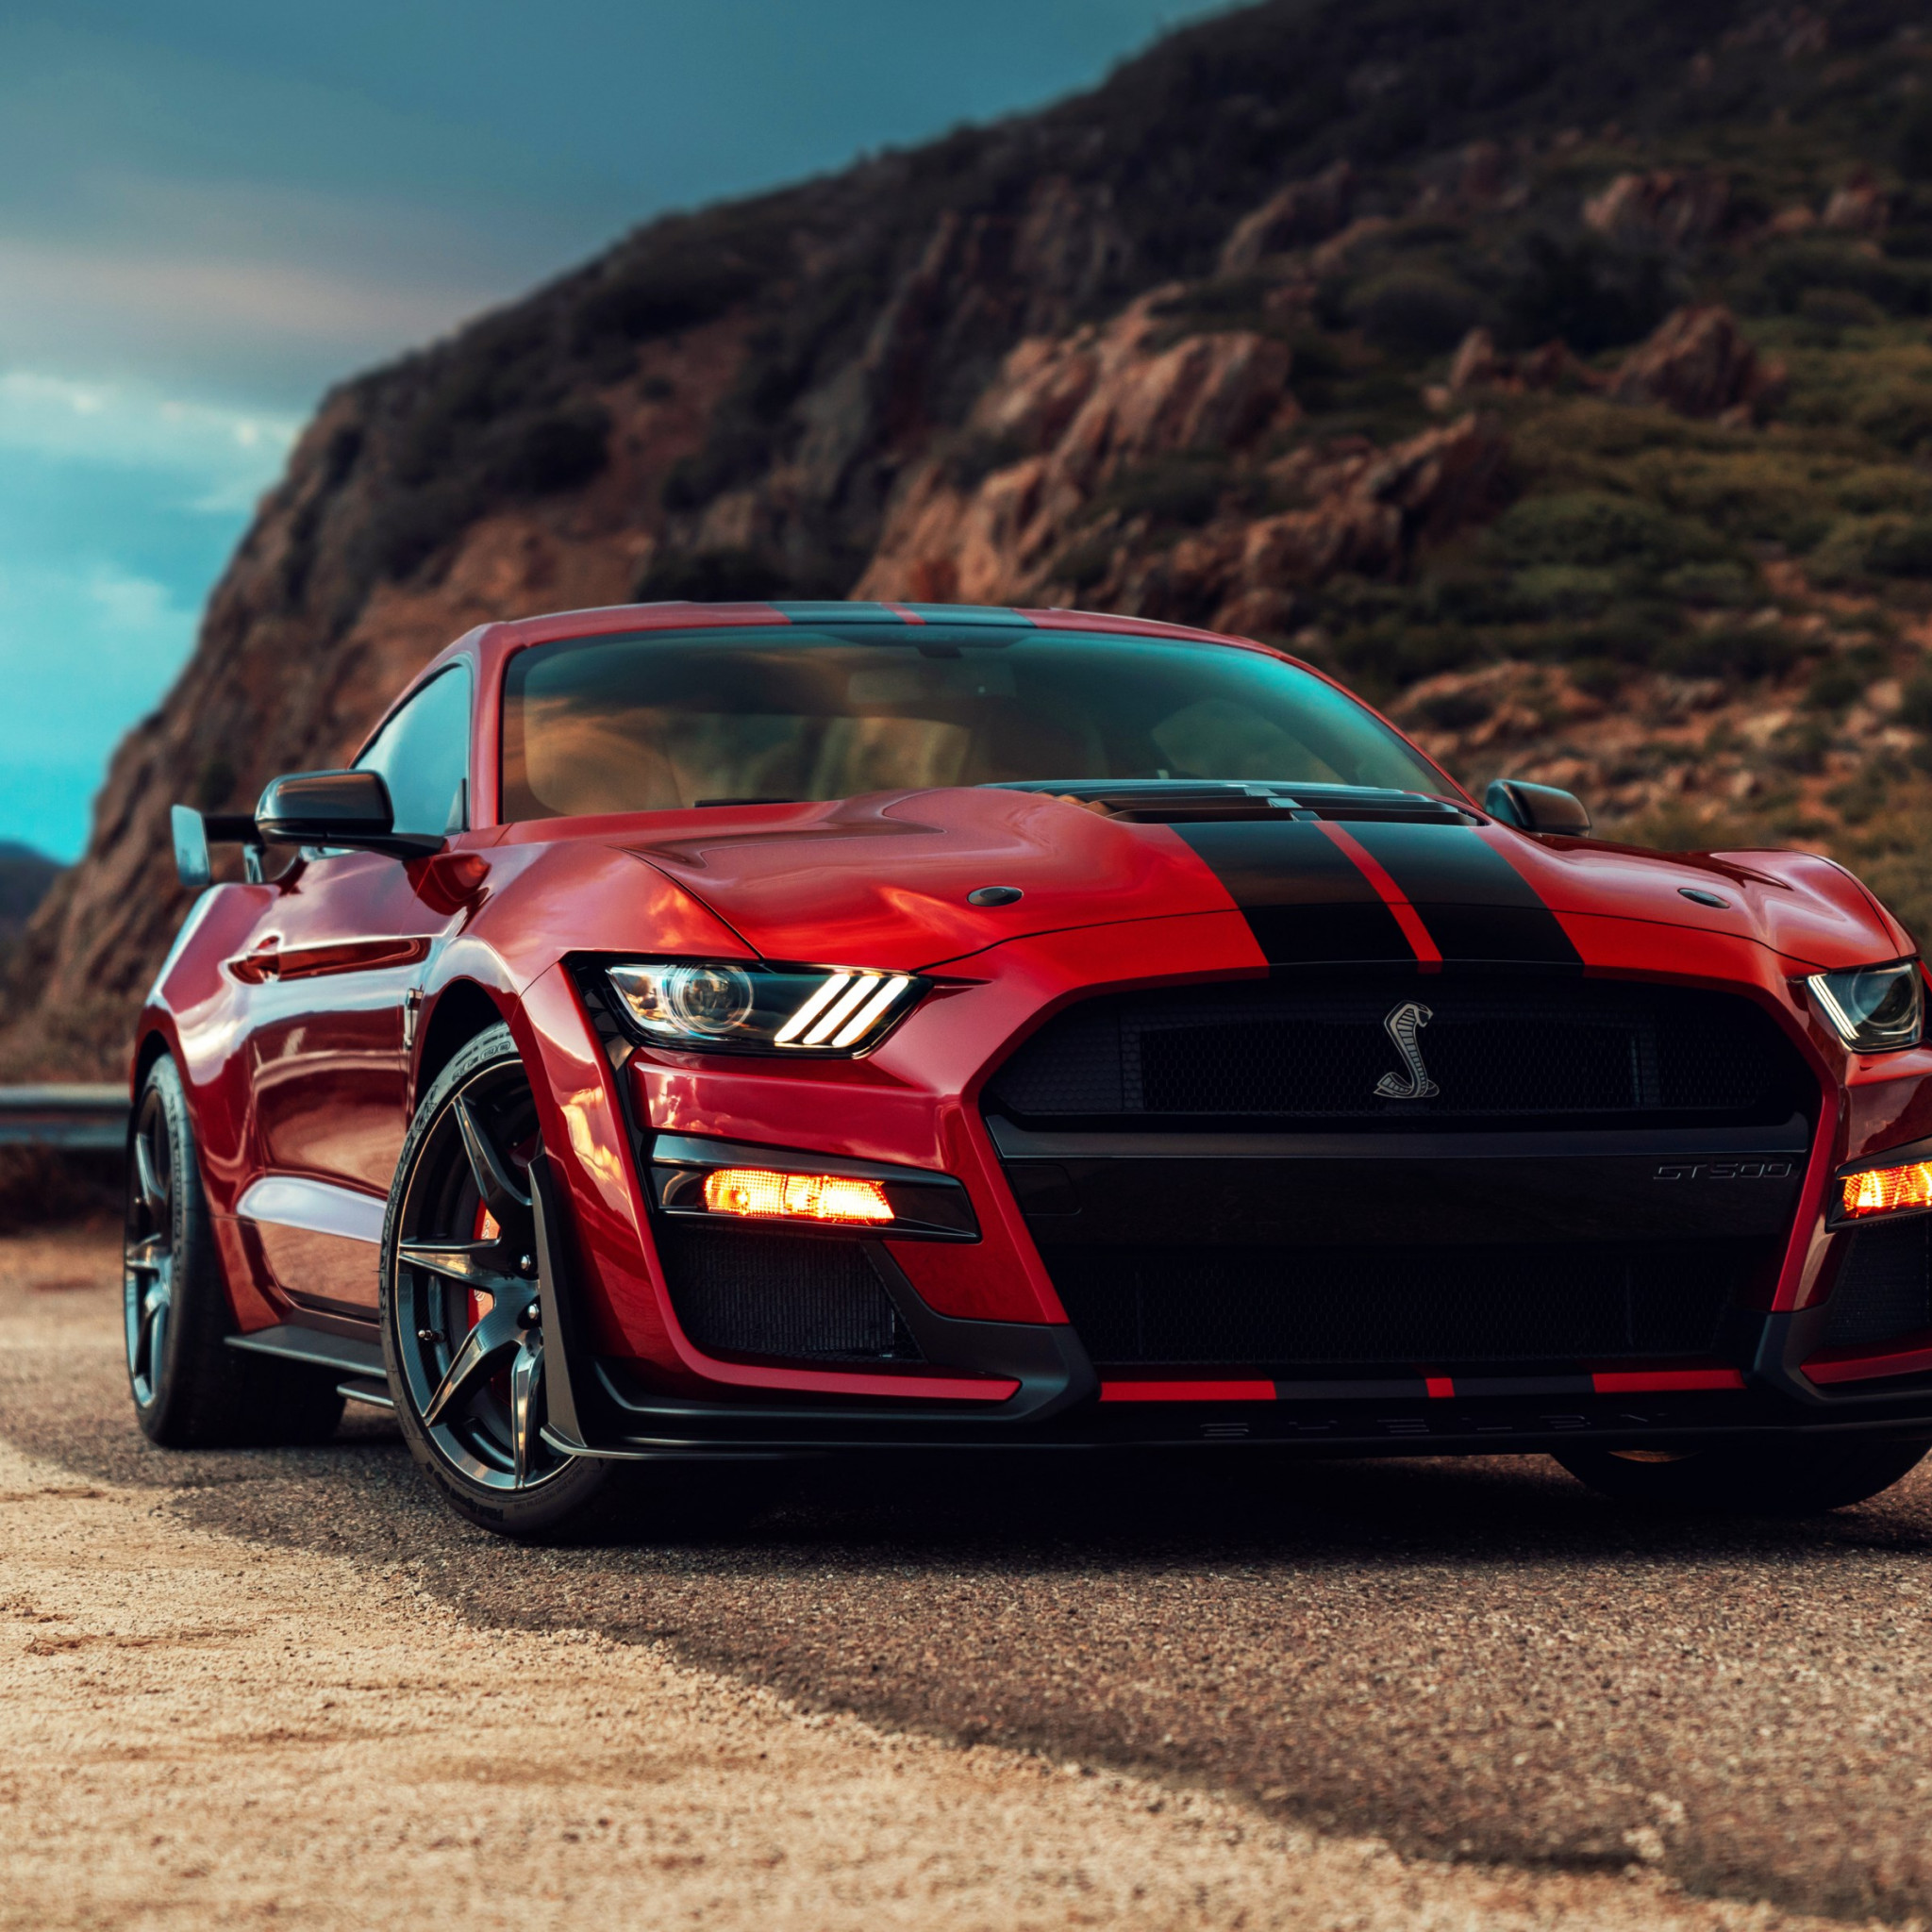 Ford Mustang Shelby GT500 wallpaper 2048x2048